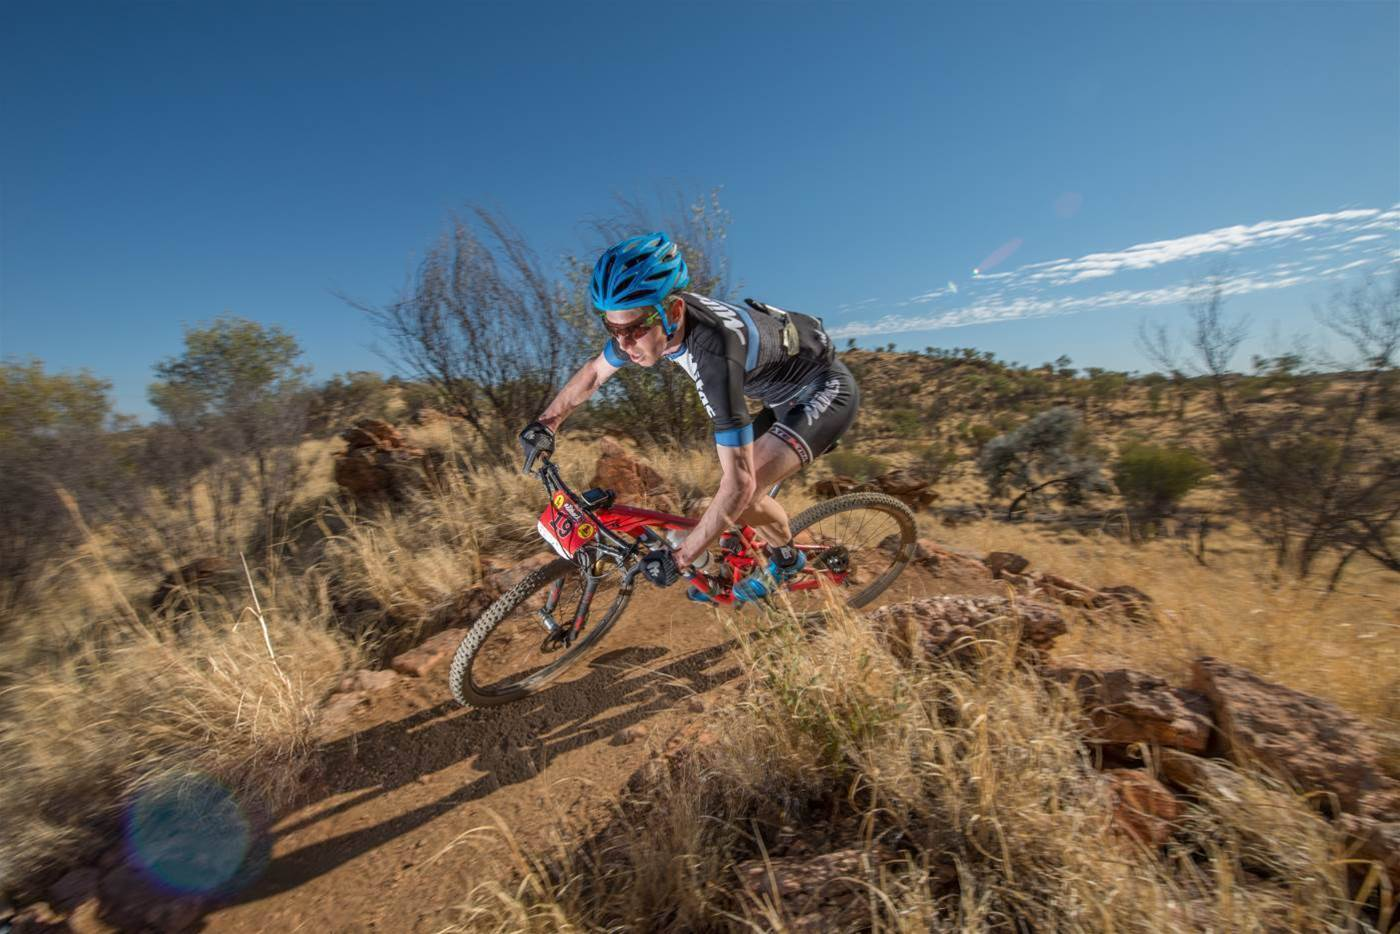 Henderson and Smith triumph at The Redback